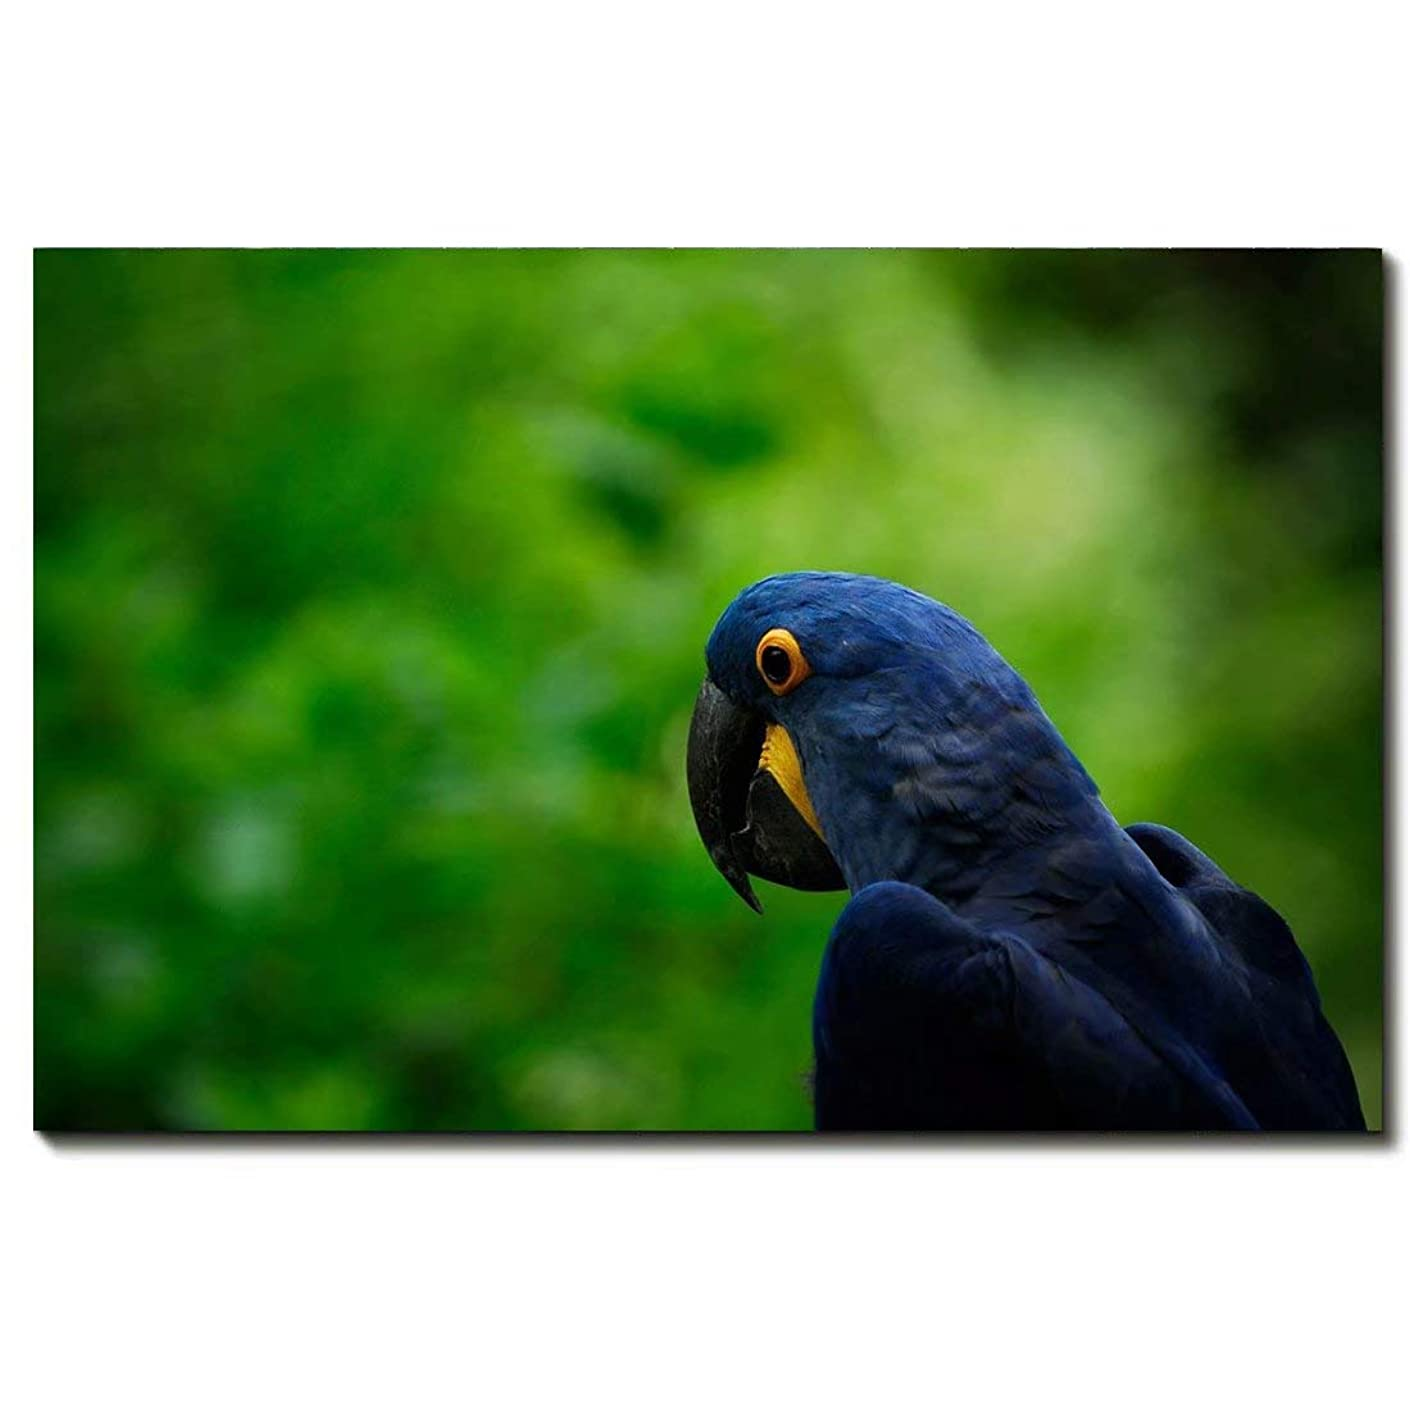 Print Artwork Blue-Black Parrot Wall Art Decor Poster Artworks For Homes Canvas Prints Picture Animal Pictures Painting On Canvas Modern Seascape Home Office Decor,16 * 24inch(40 * 60cm)